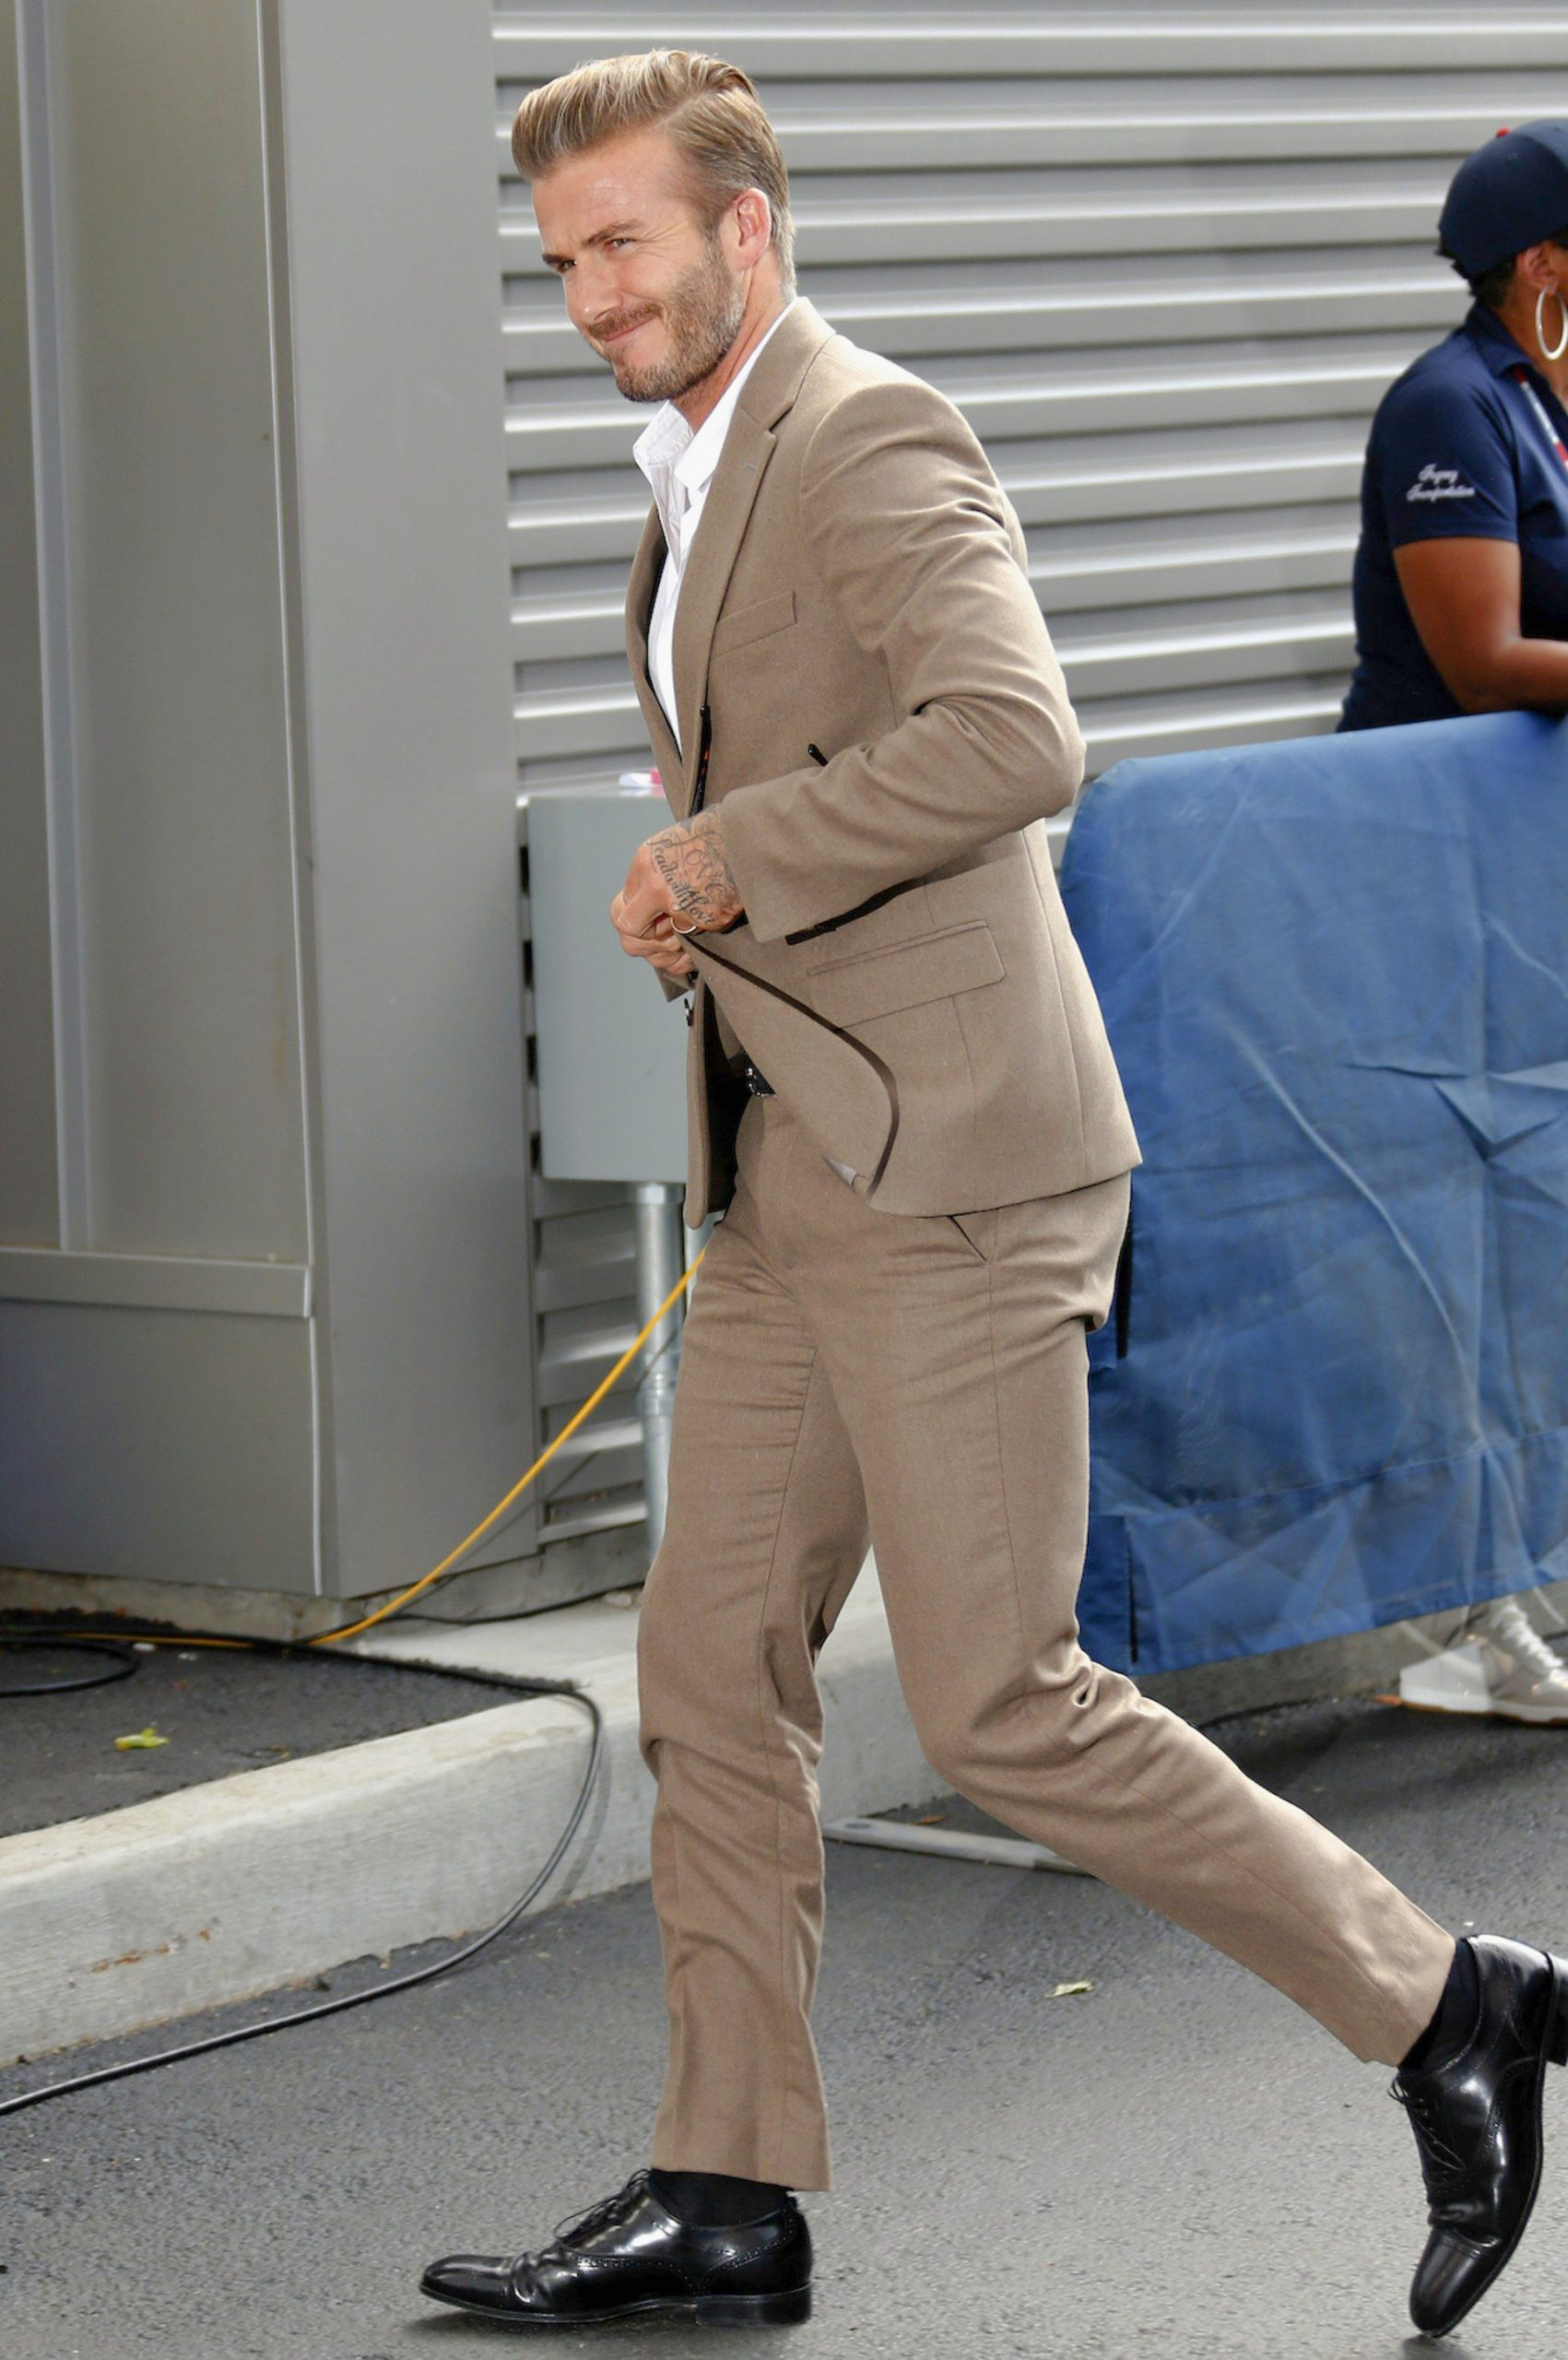 David Beckham in a tan suit and a white dress shirt